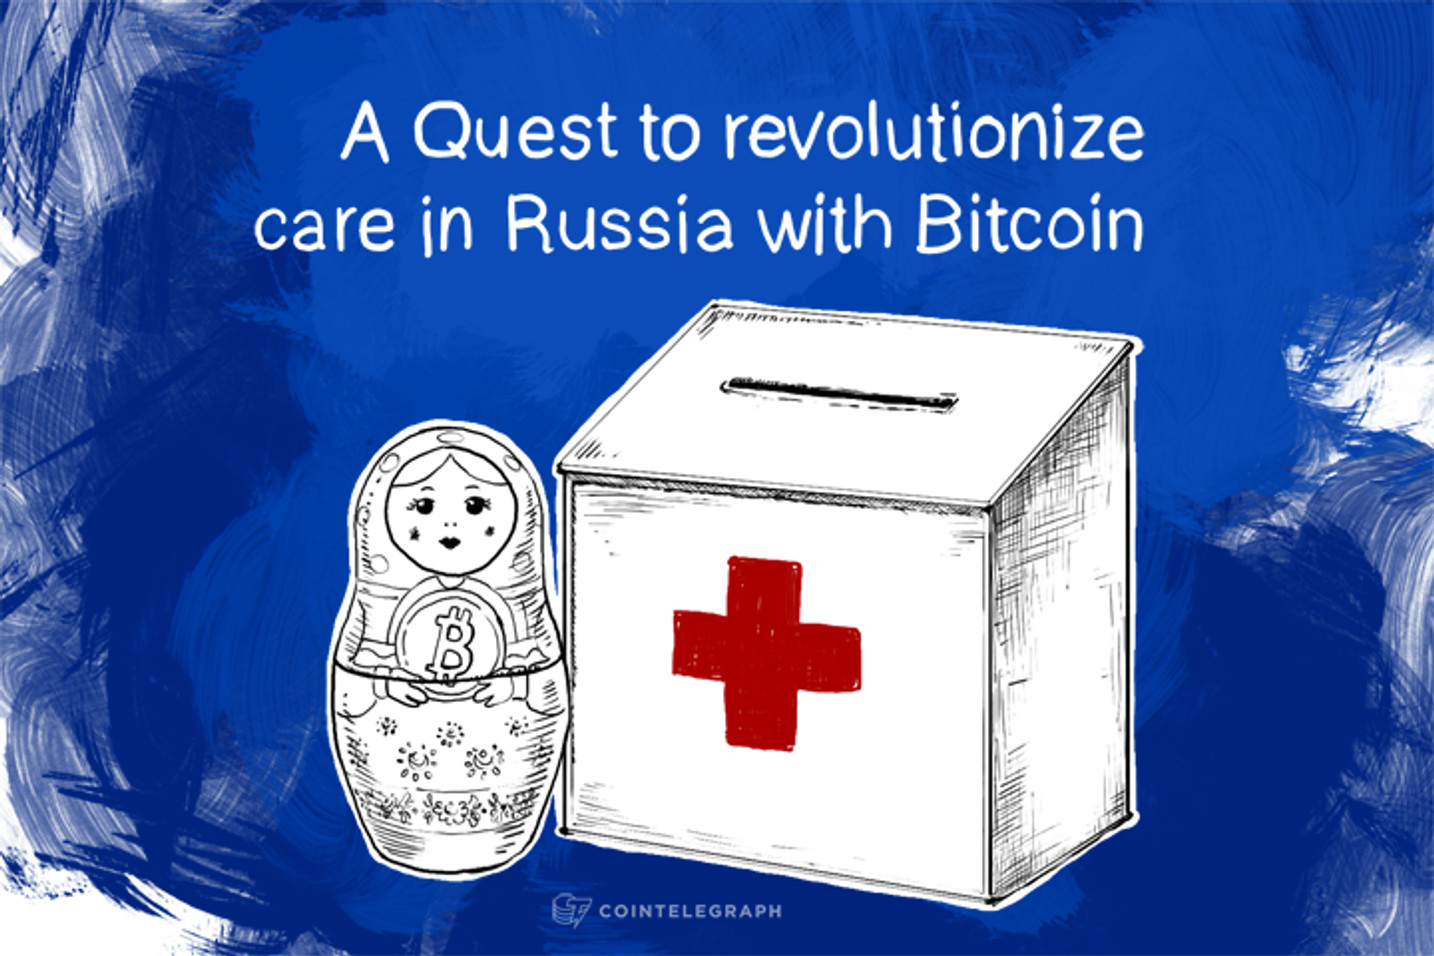 A Quest to revolutionize care in Russia with Bitcoin